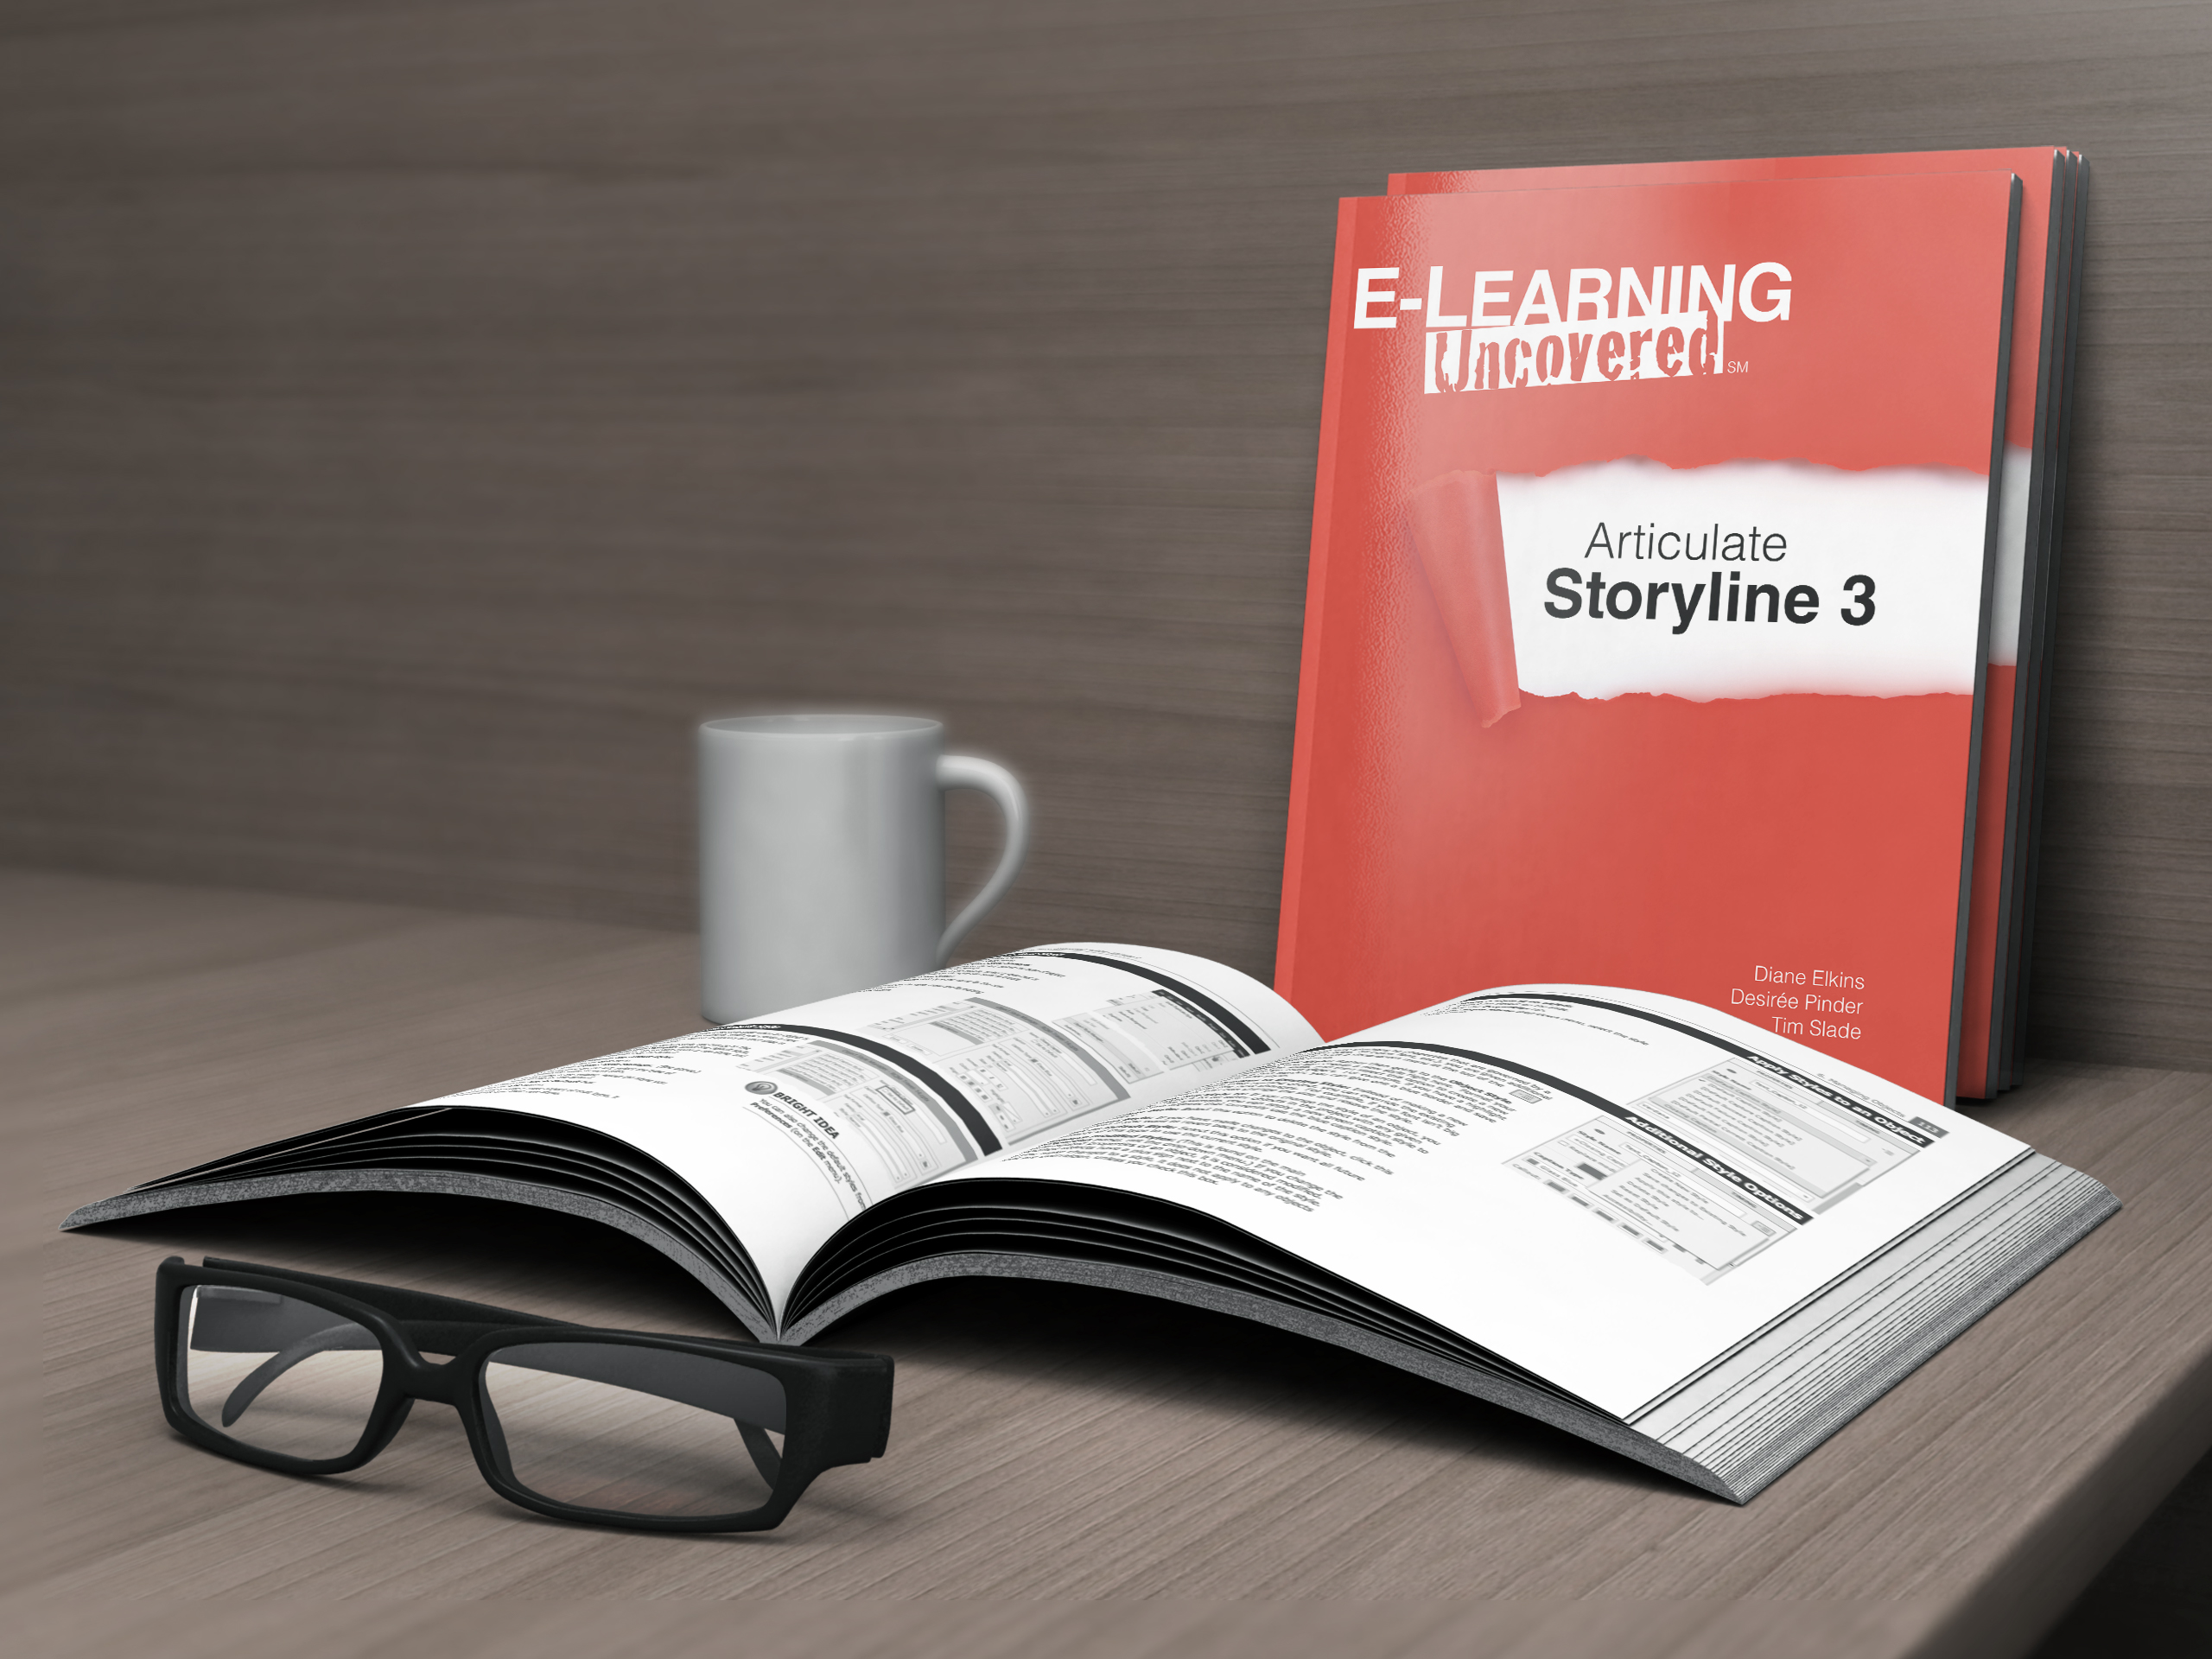 Articulate Storyline 3 Book